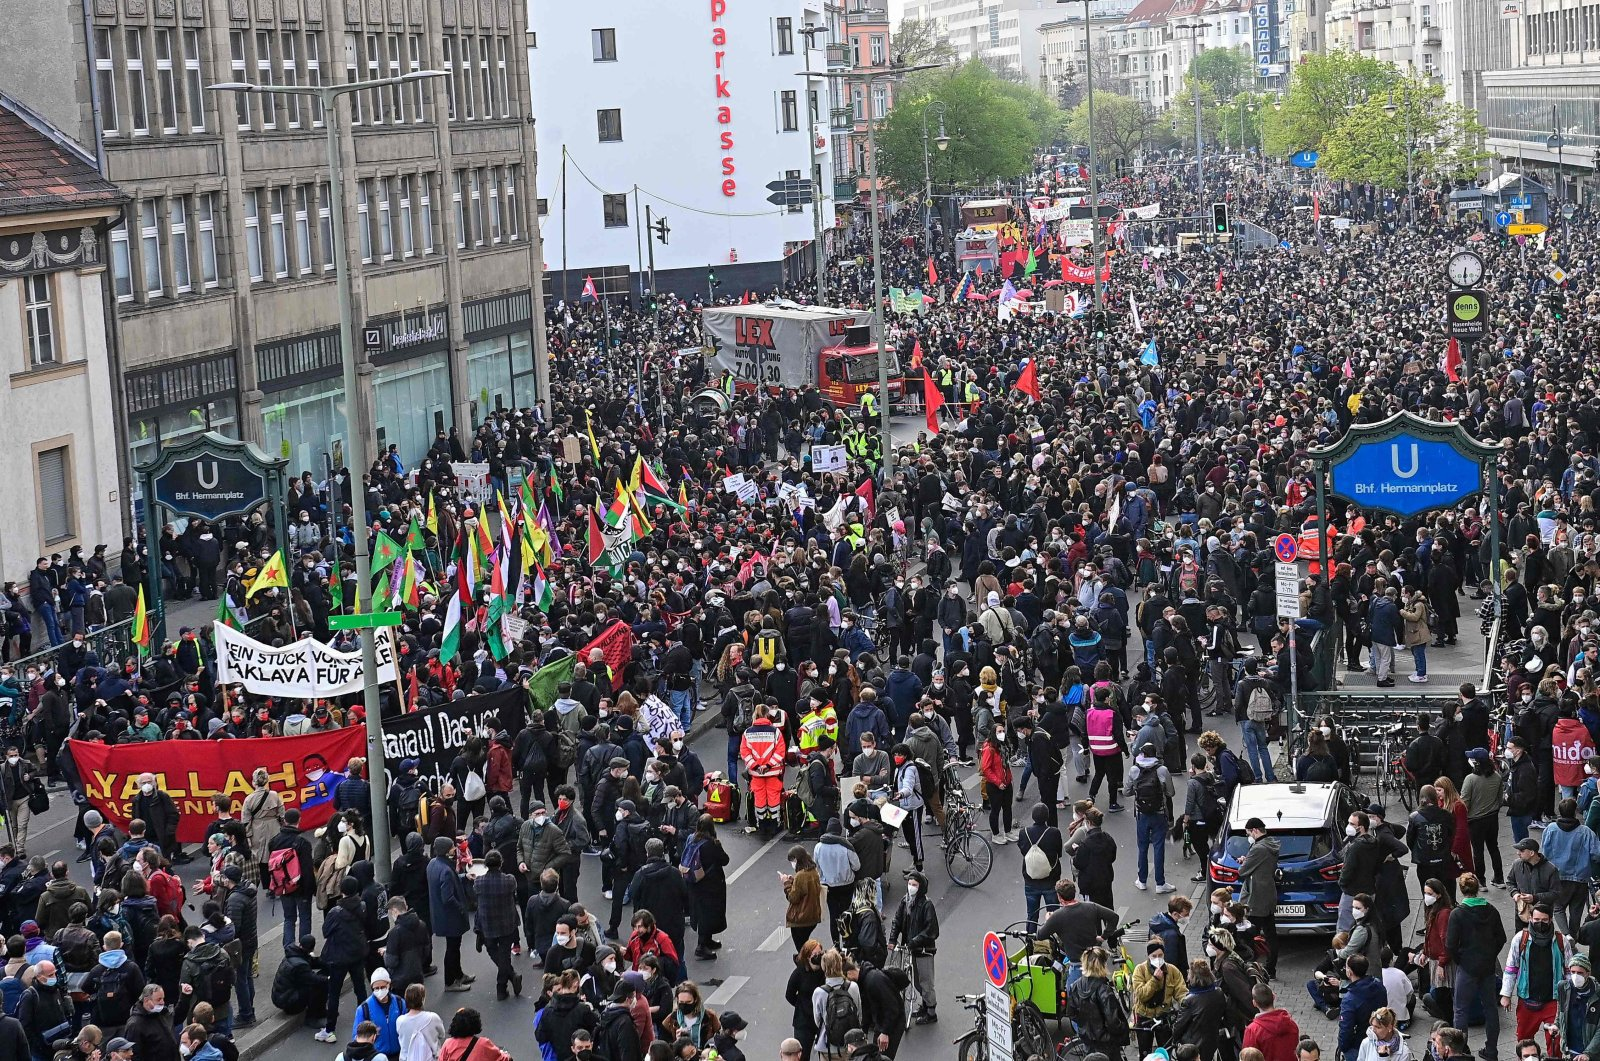 """YPG/PKK terrorist group banners are displayed during the so-called """"Revolutionary Mayday"""" demonstration at Hermannplatz in the Kreuzberg district of Berlin, Germany, May 1, 2021. (AFP Photo)"""